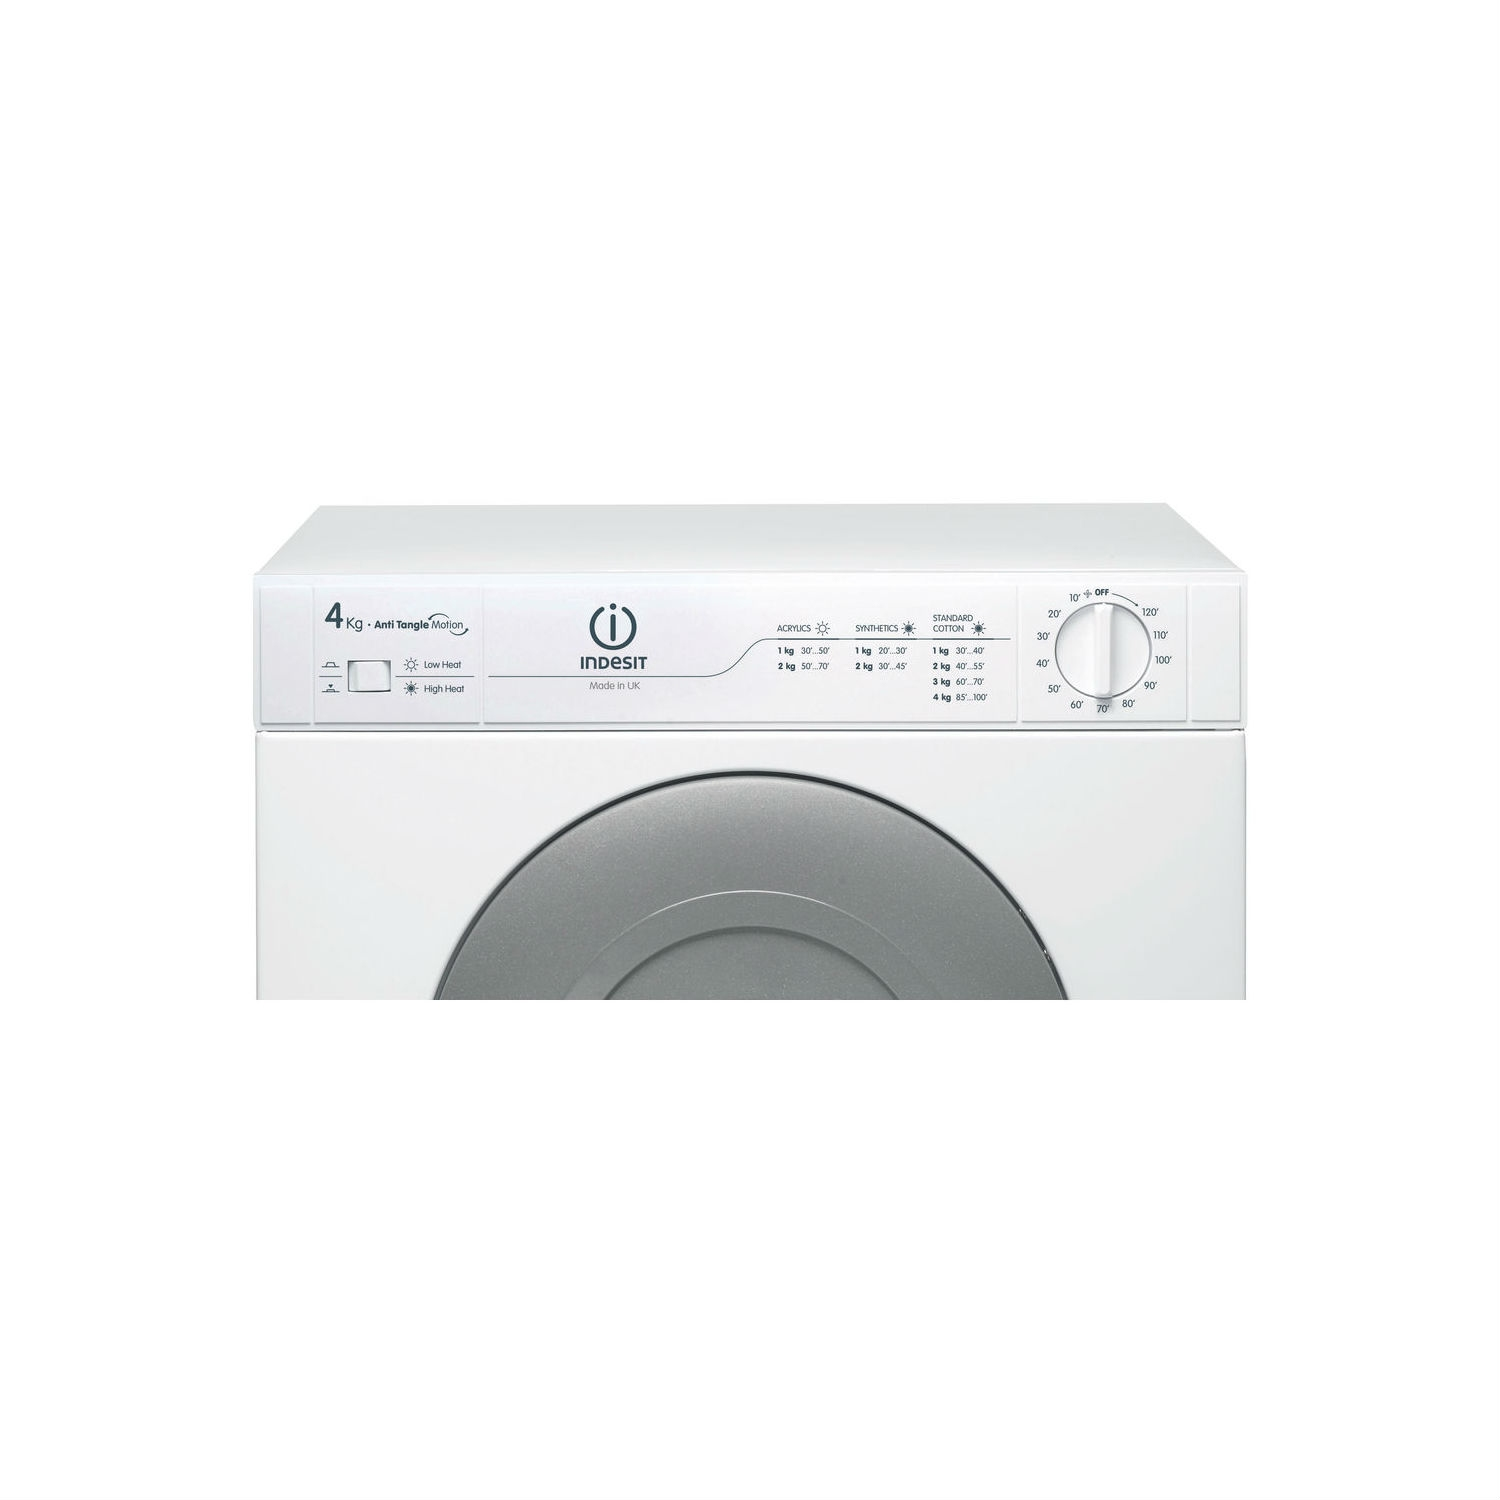 Indesit Refresh Option Vented Tumble Dryer - White - C Energy Rated - 3